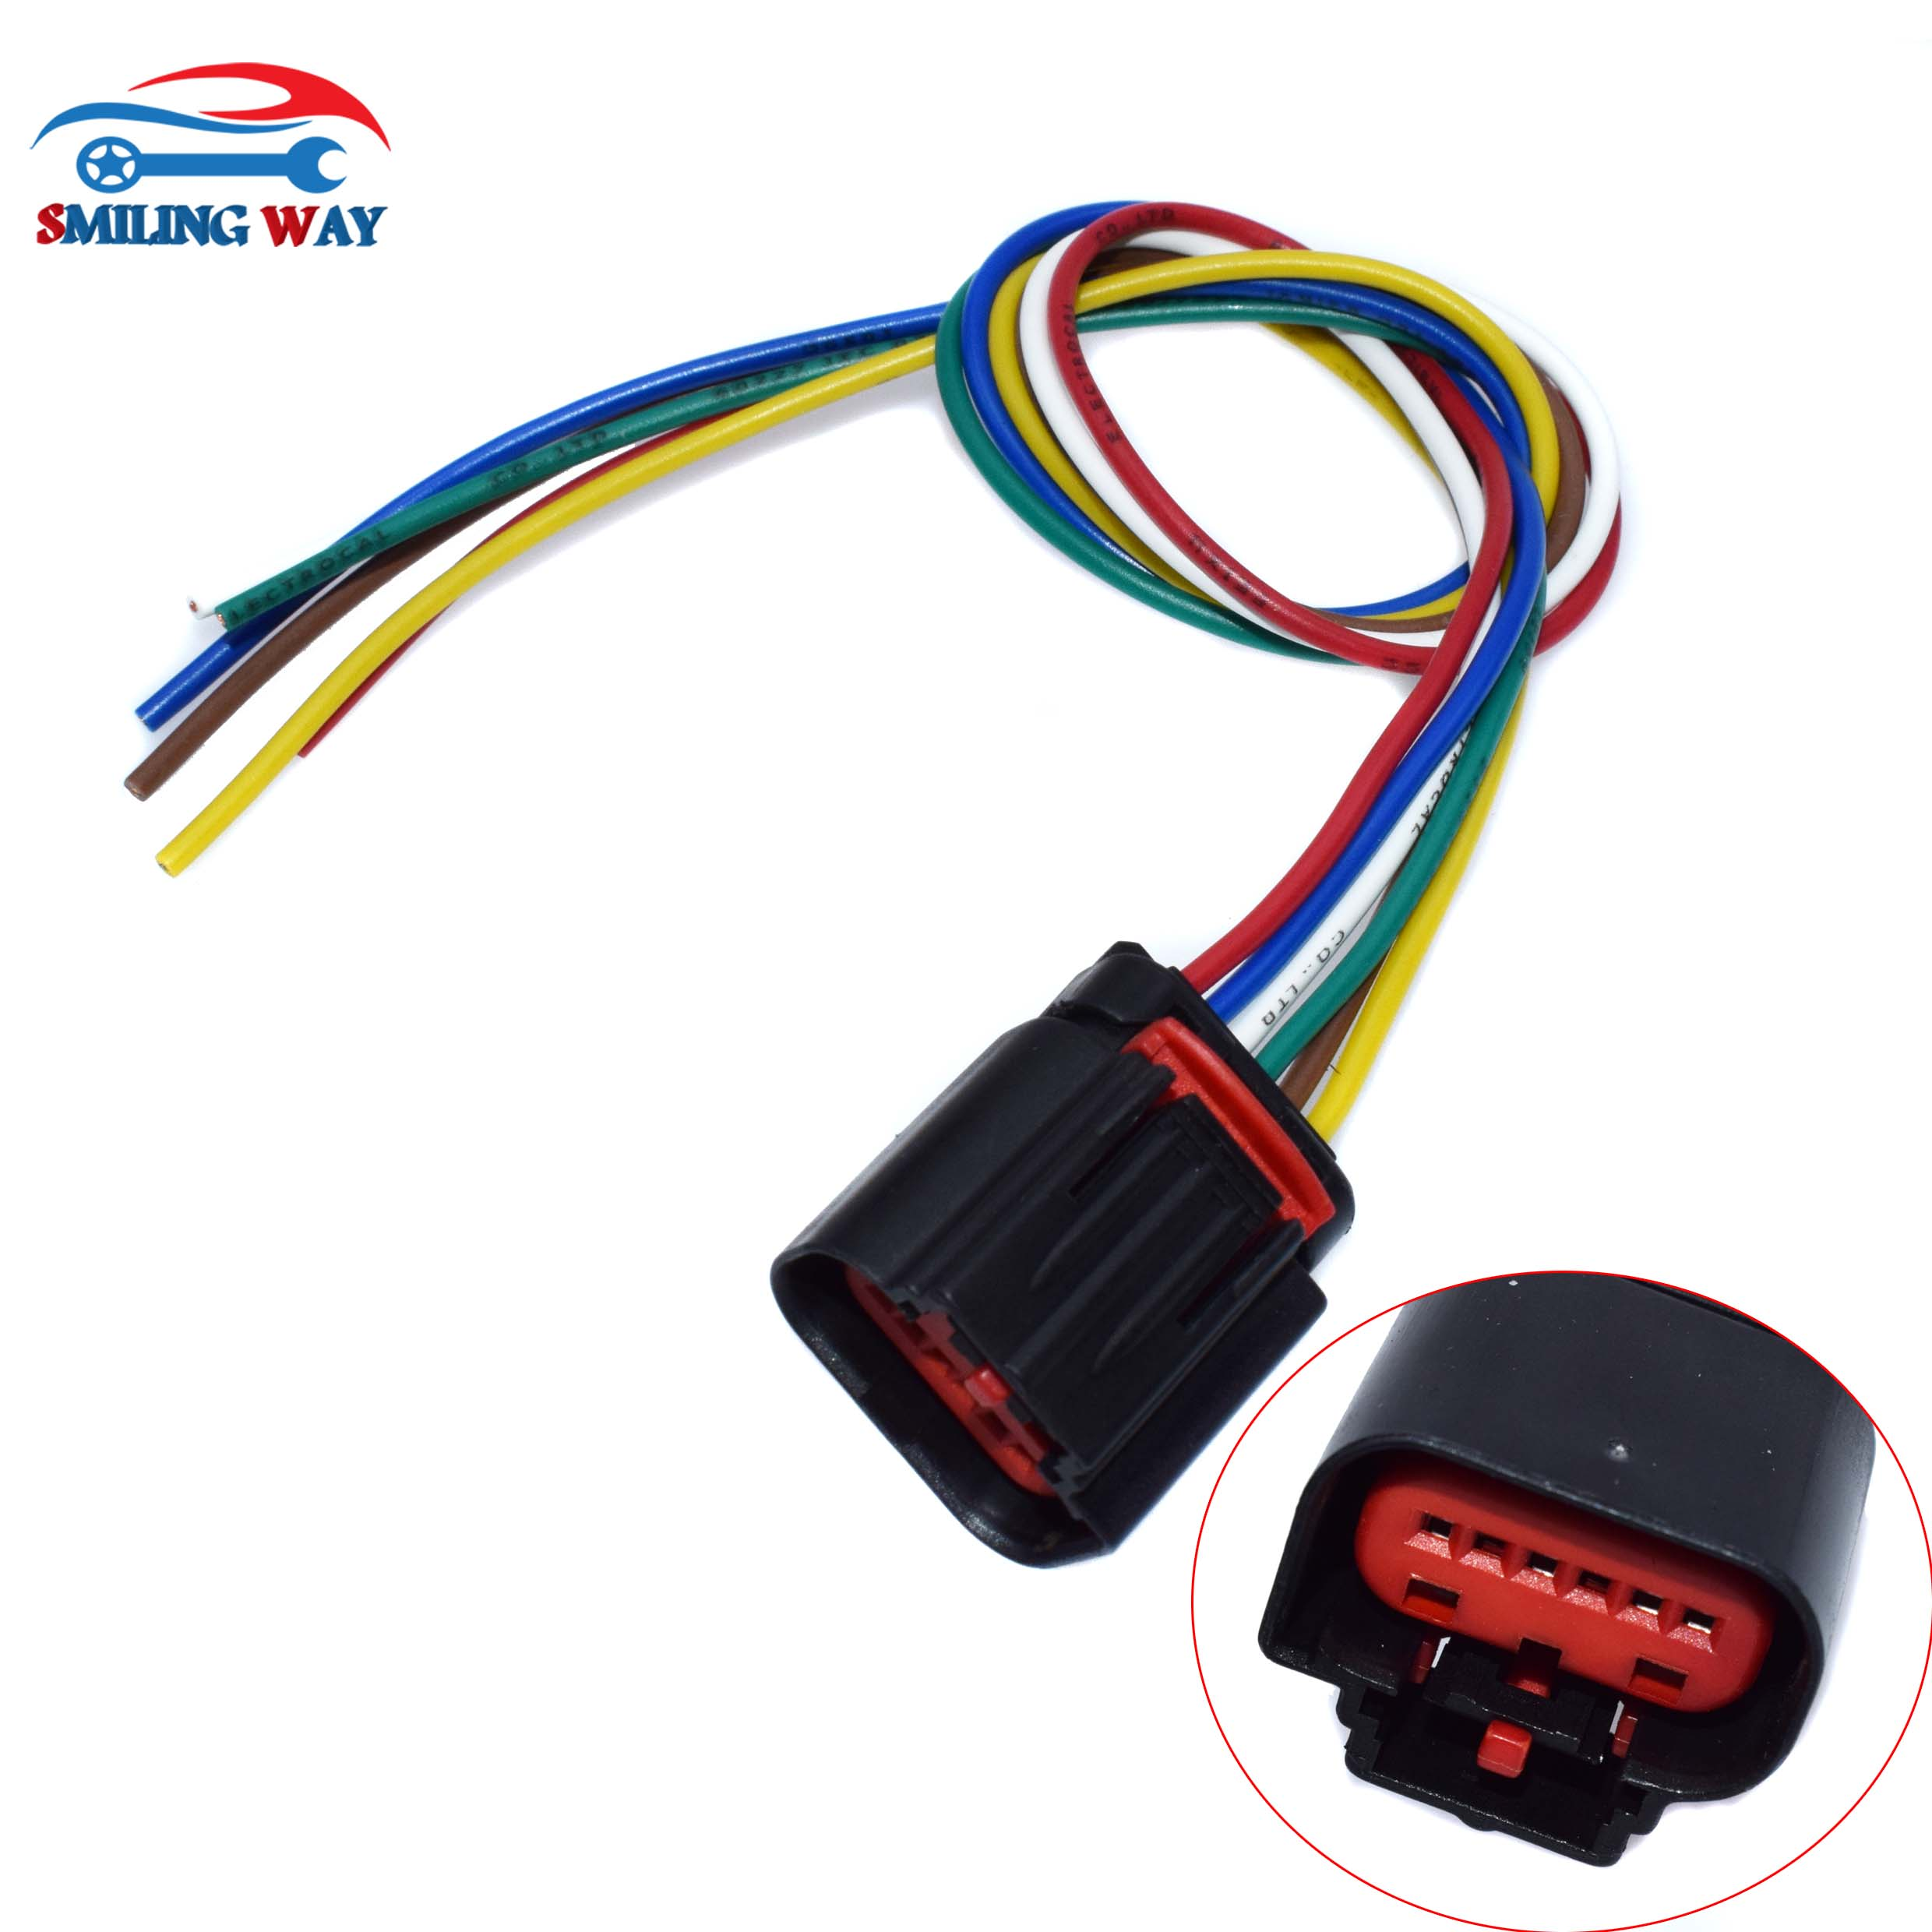 MAF Air Mass Flow Sensor Wiring Connector Wire Harness Pigtail Plug For  Citroen Fiat Ducato Ford Volvo S80 Peugeot Land Rover| | - AliExpressAliExpress